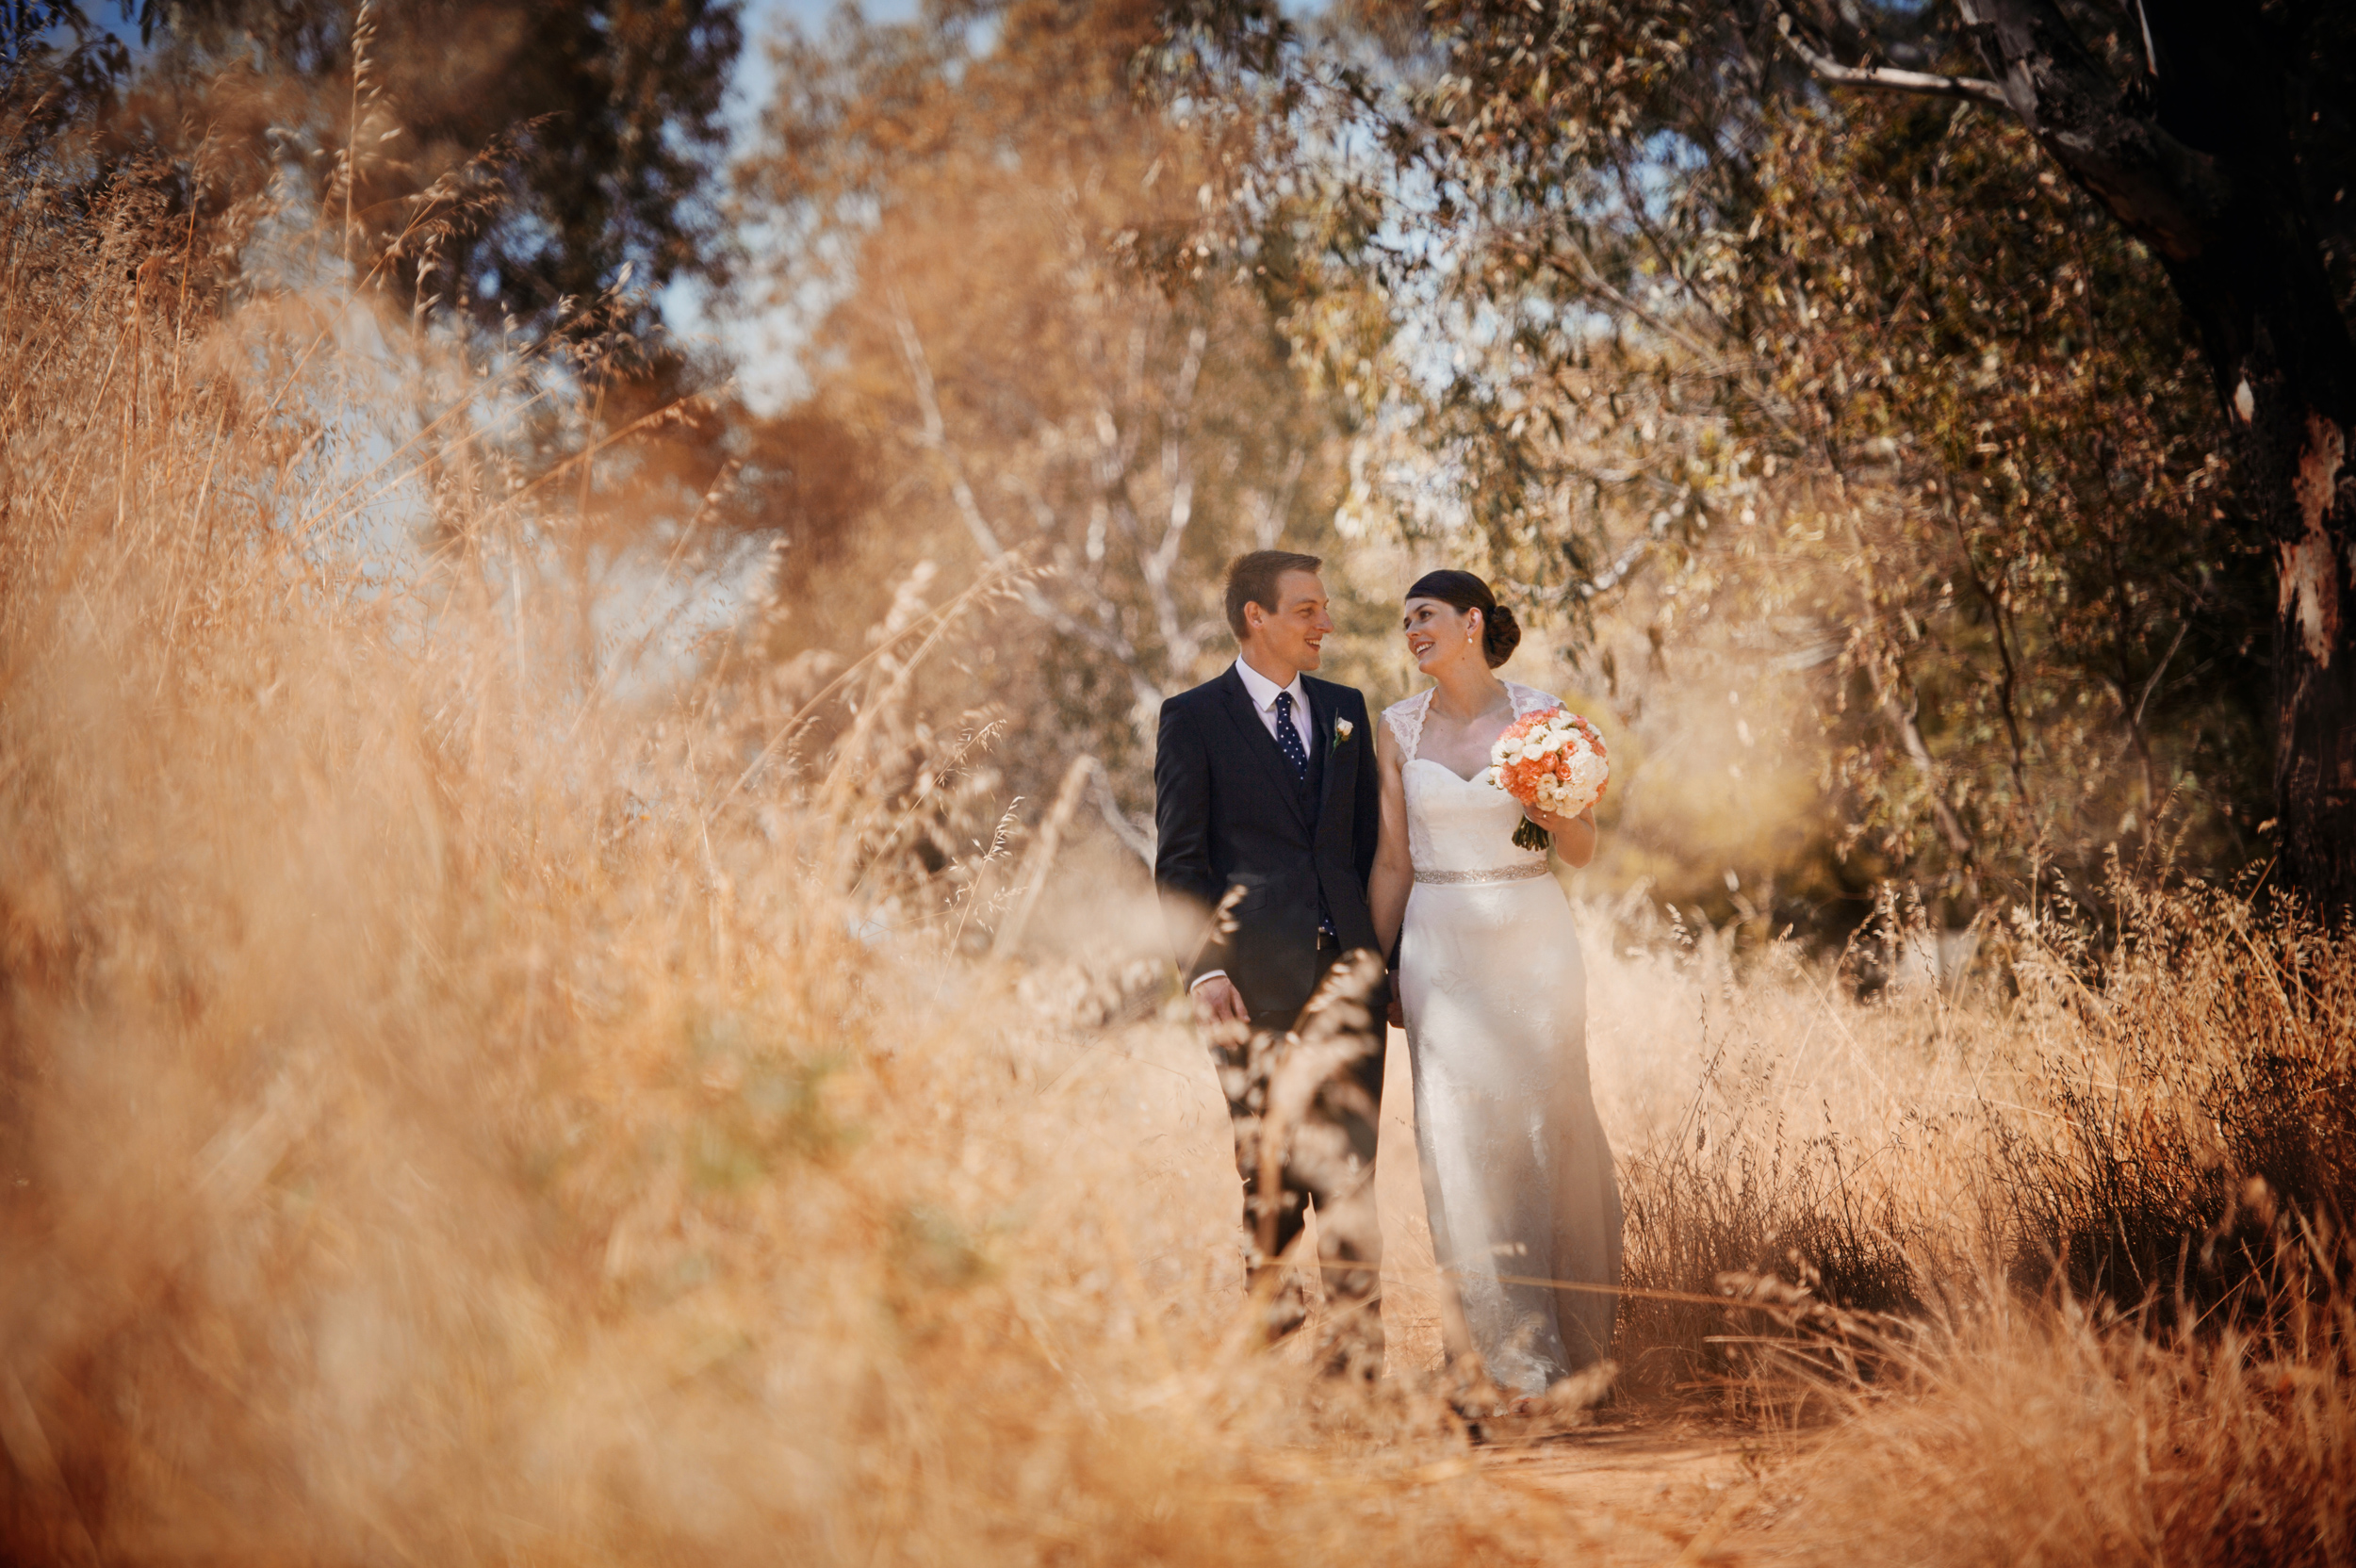 euroa_butter_factory_wedding_photography_26.jpg